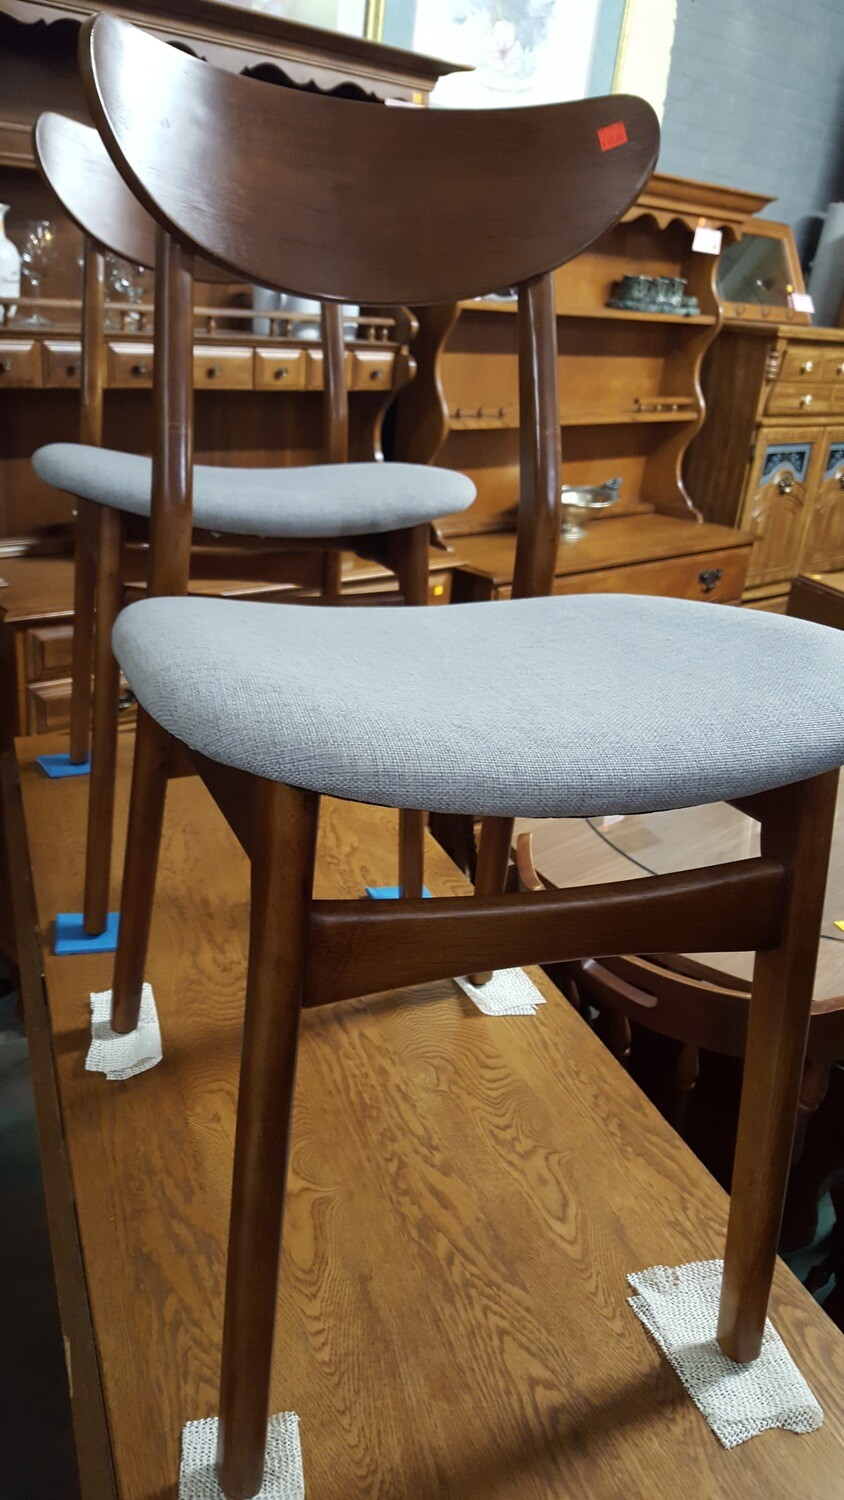 MCM Cafe Chair - reproduction